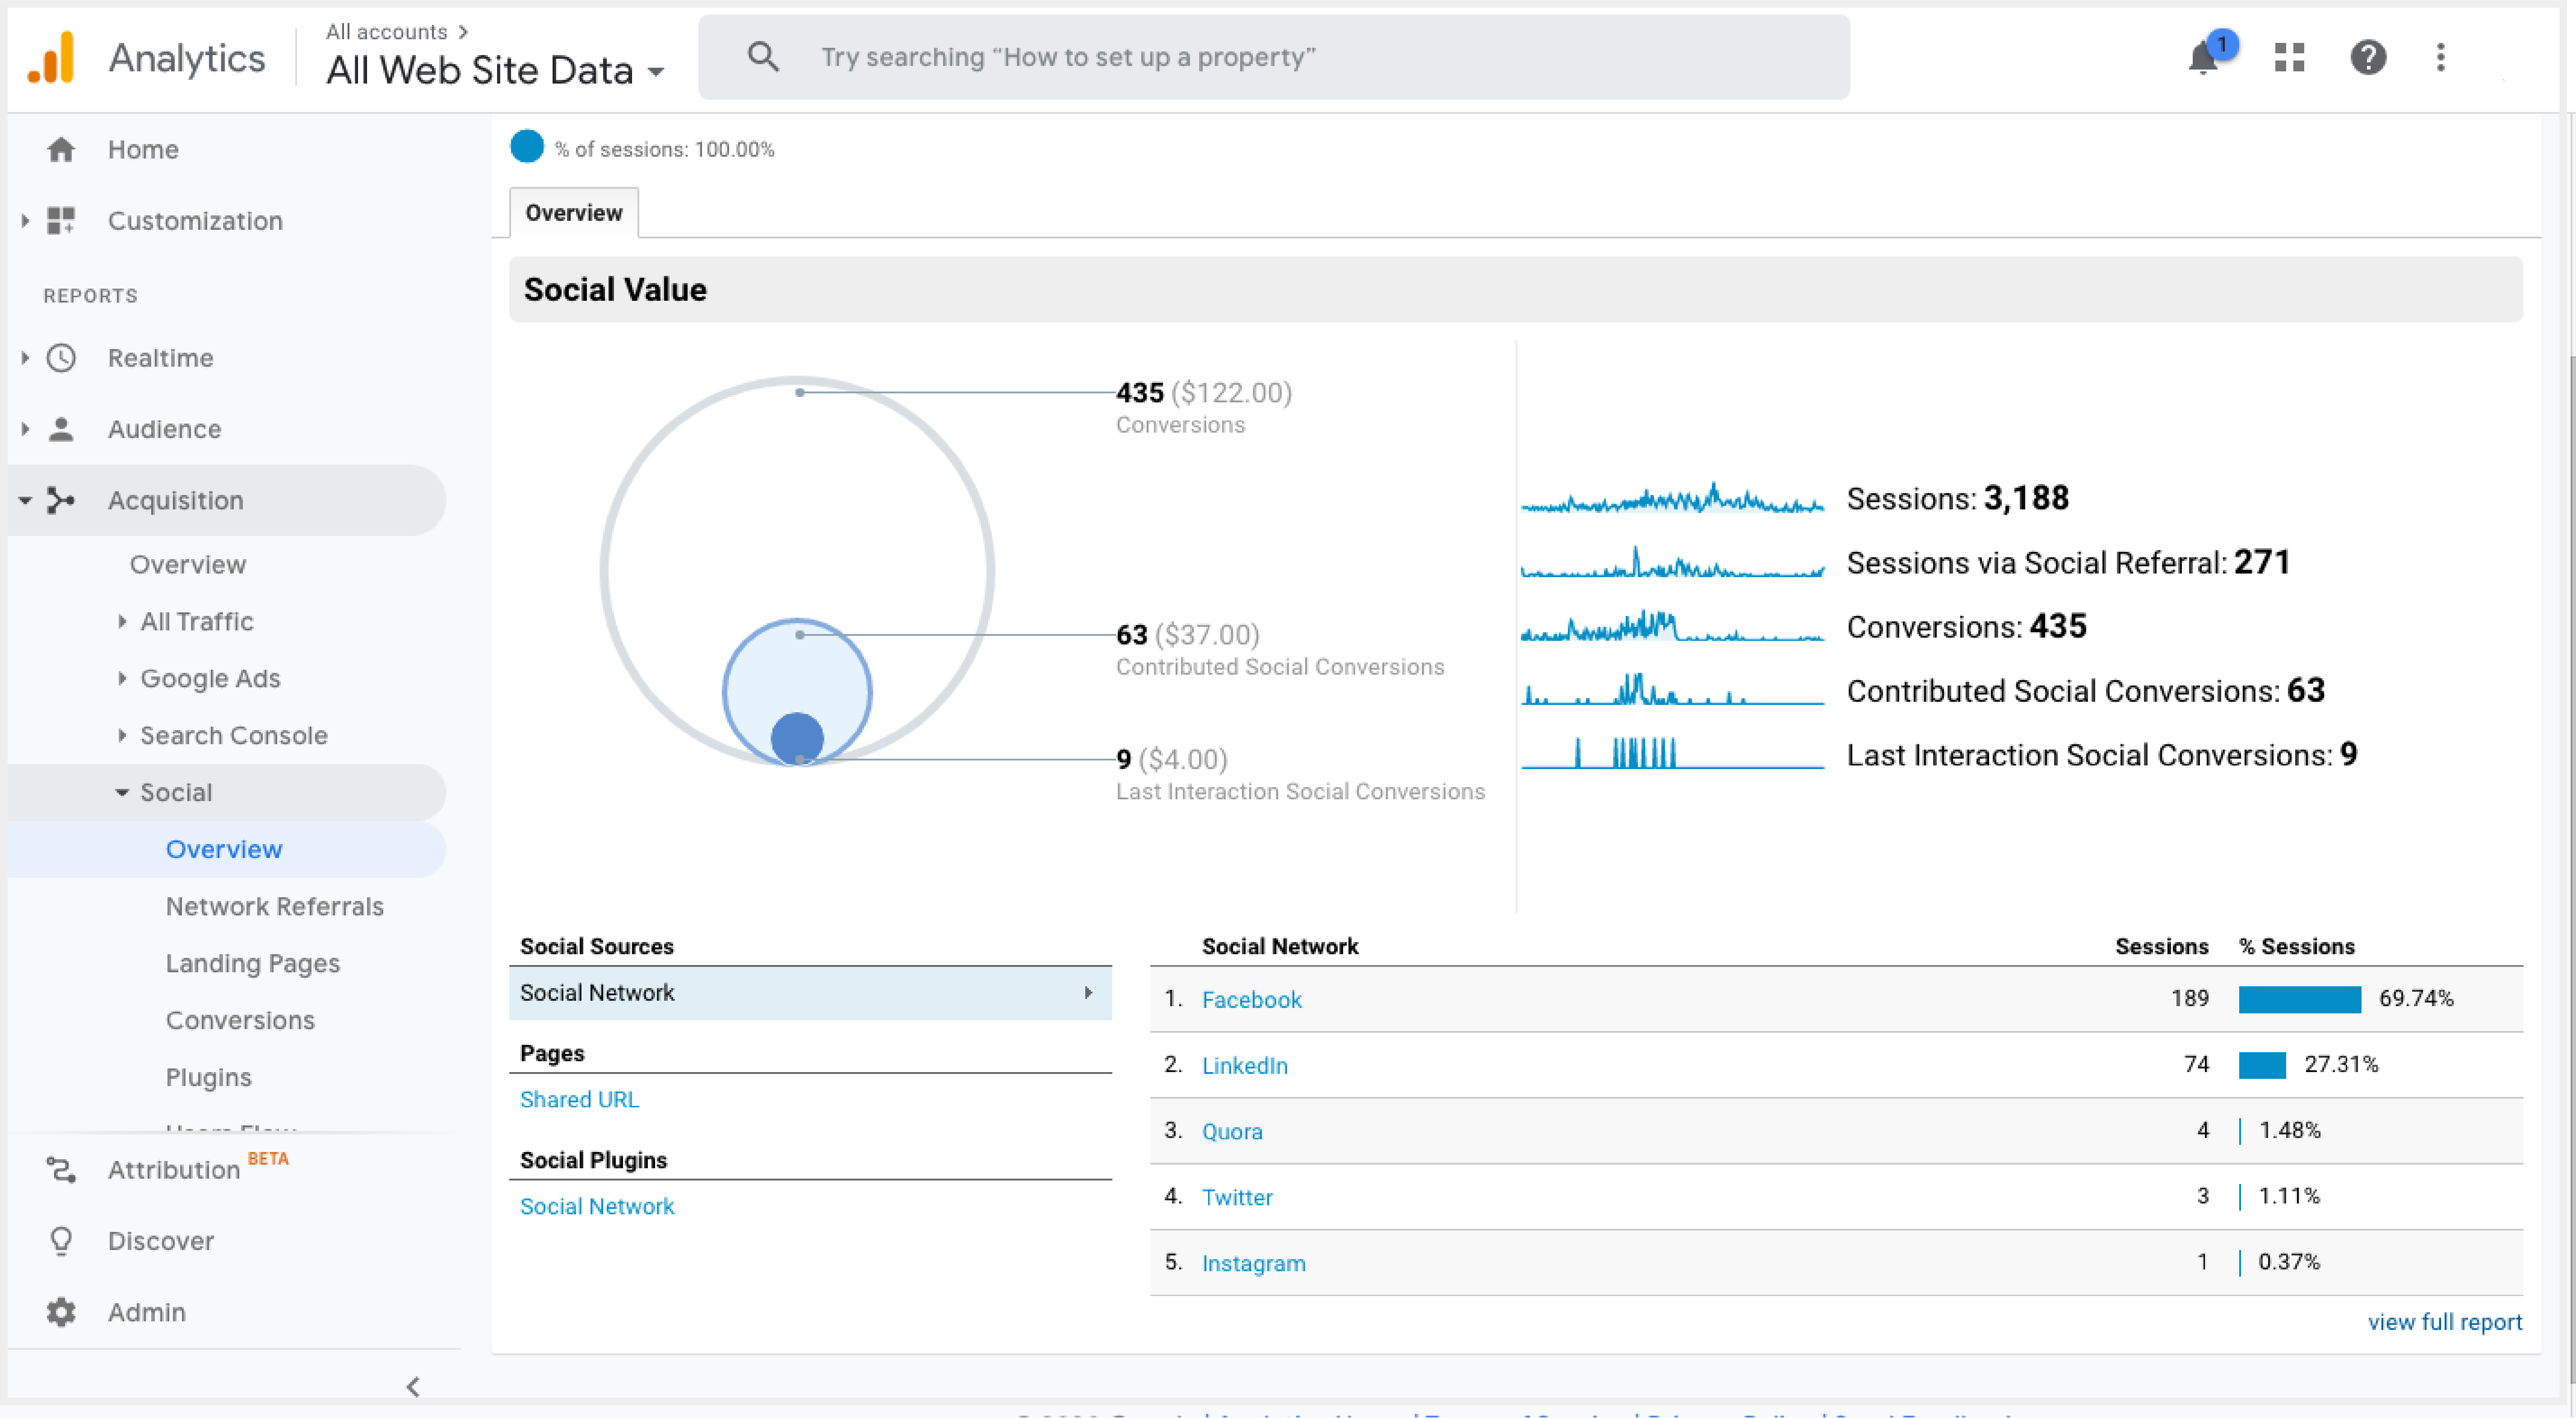 VirrgoTech-Google Analytics Social Media Traffic